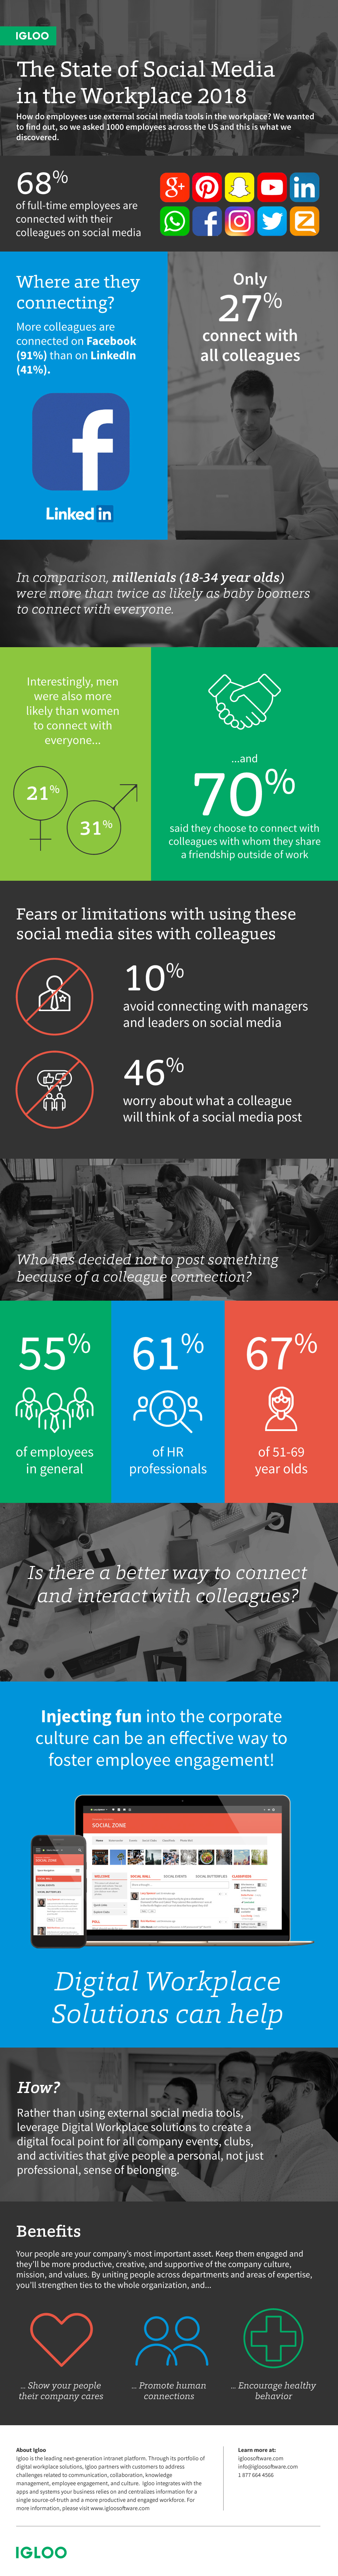 The State of Social Media in the Workplace [infographic]